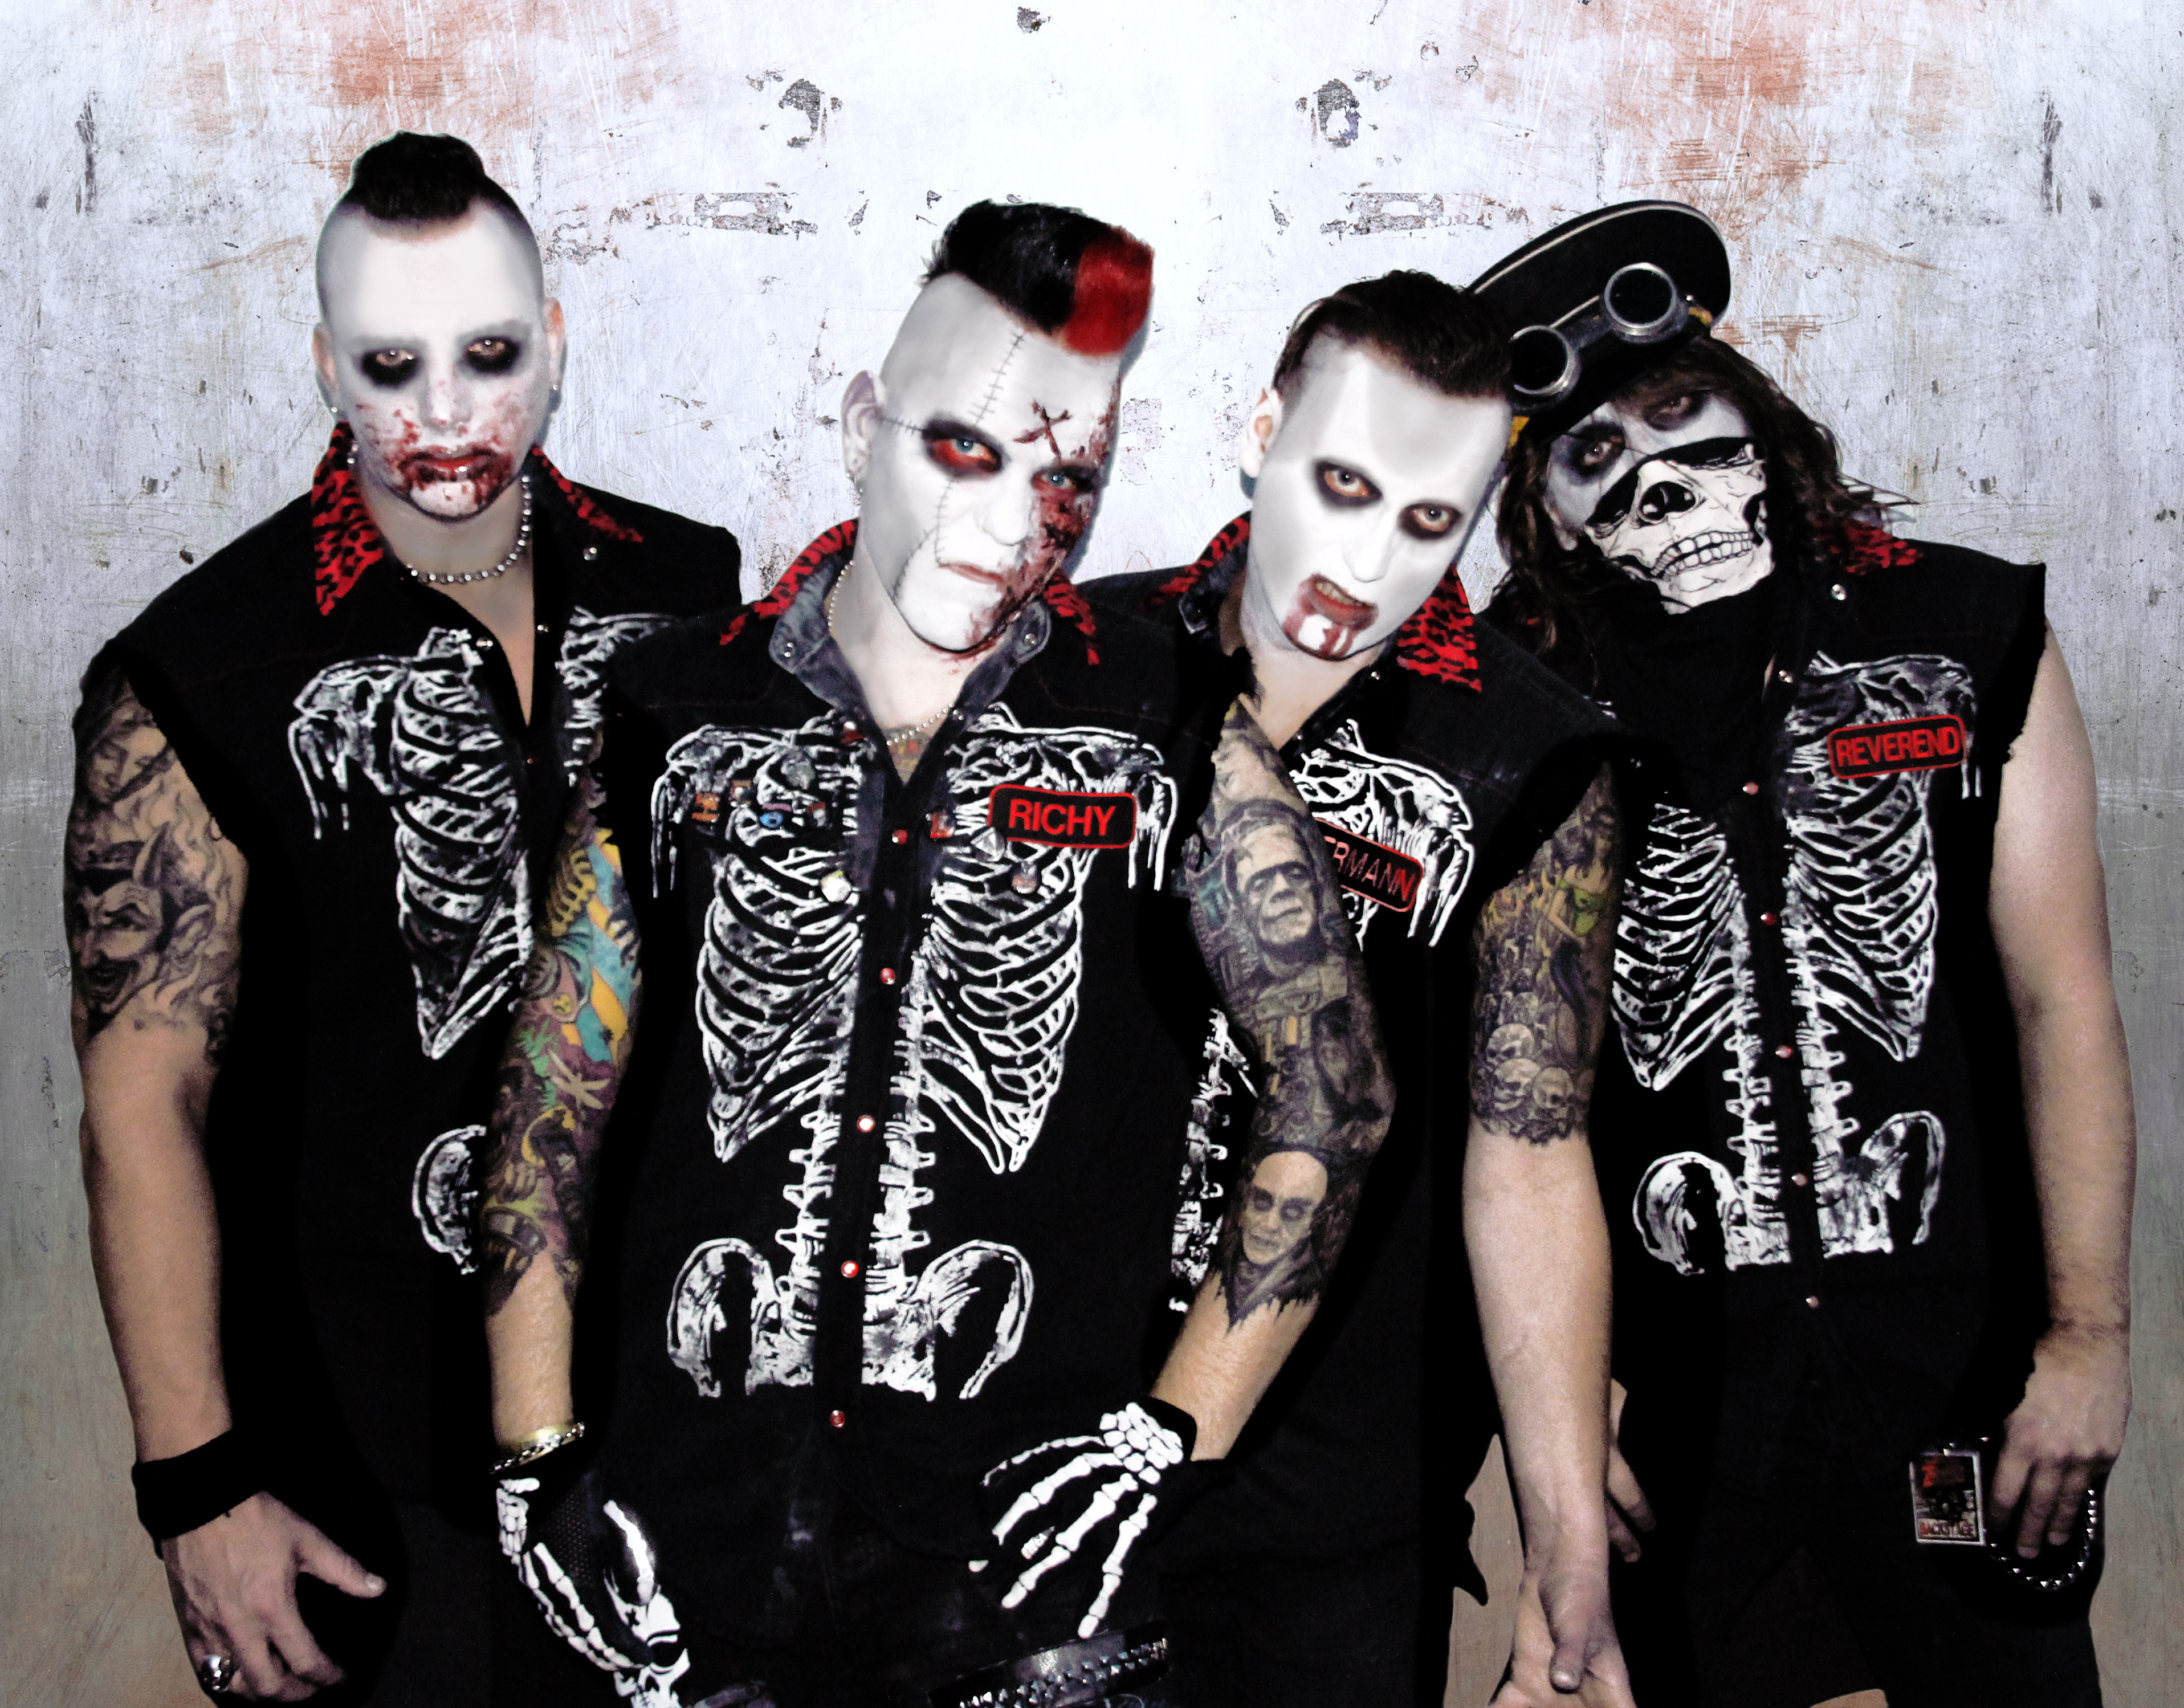 Video of the Day: 'Radioactive' by Bloodsucking Zombies from Outer Space